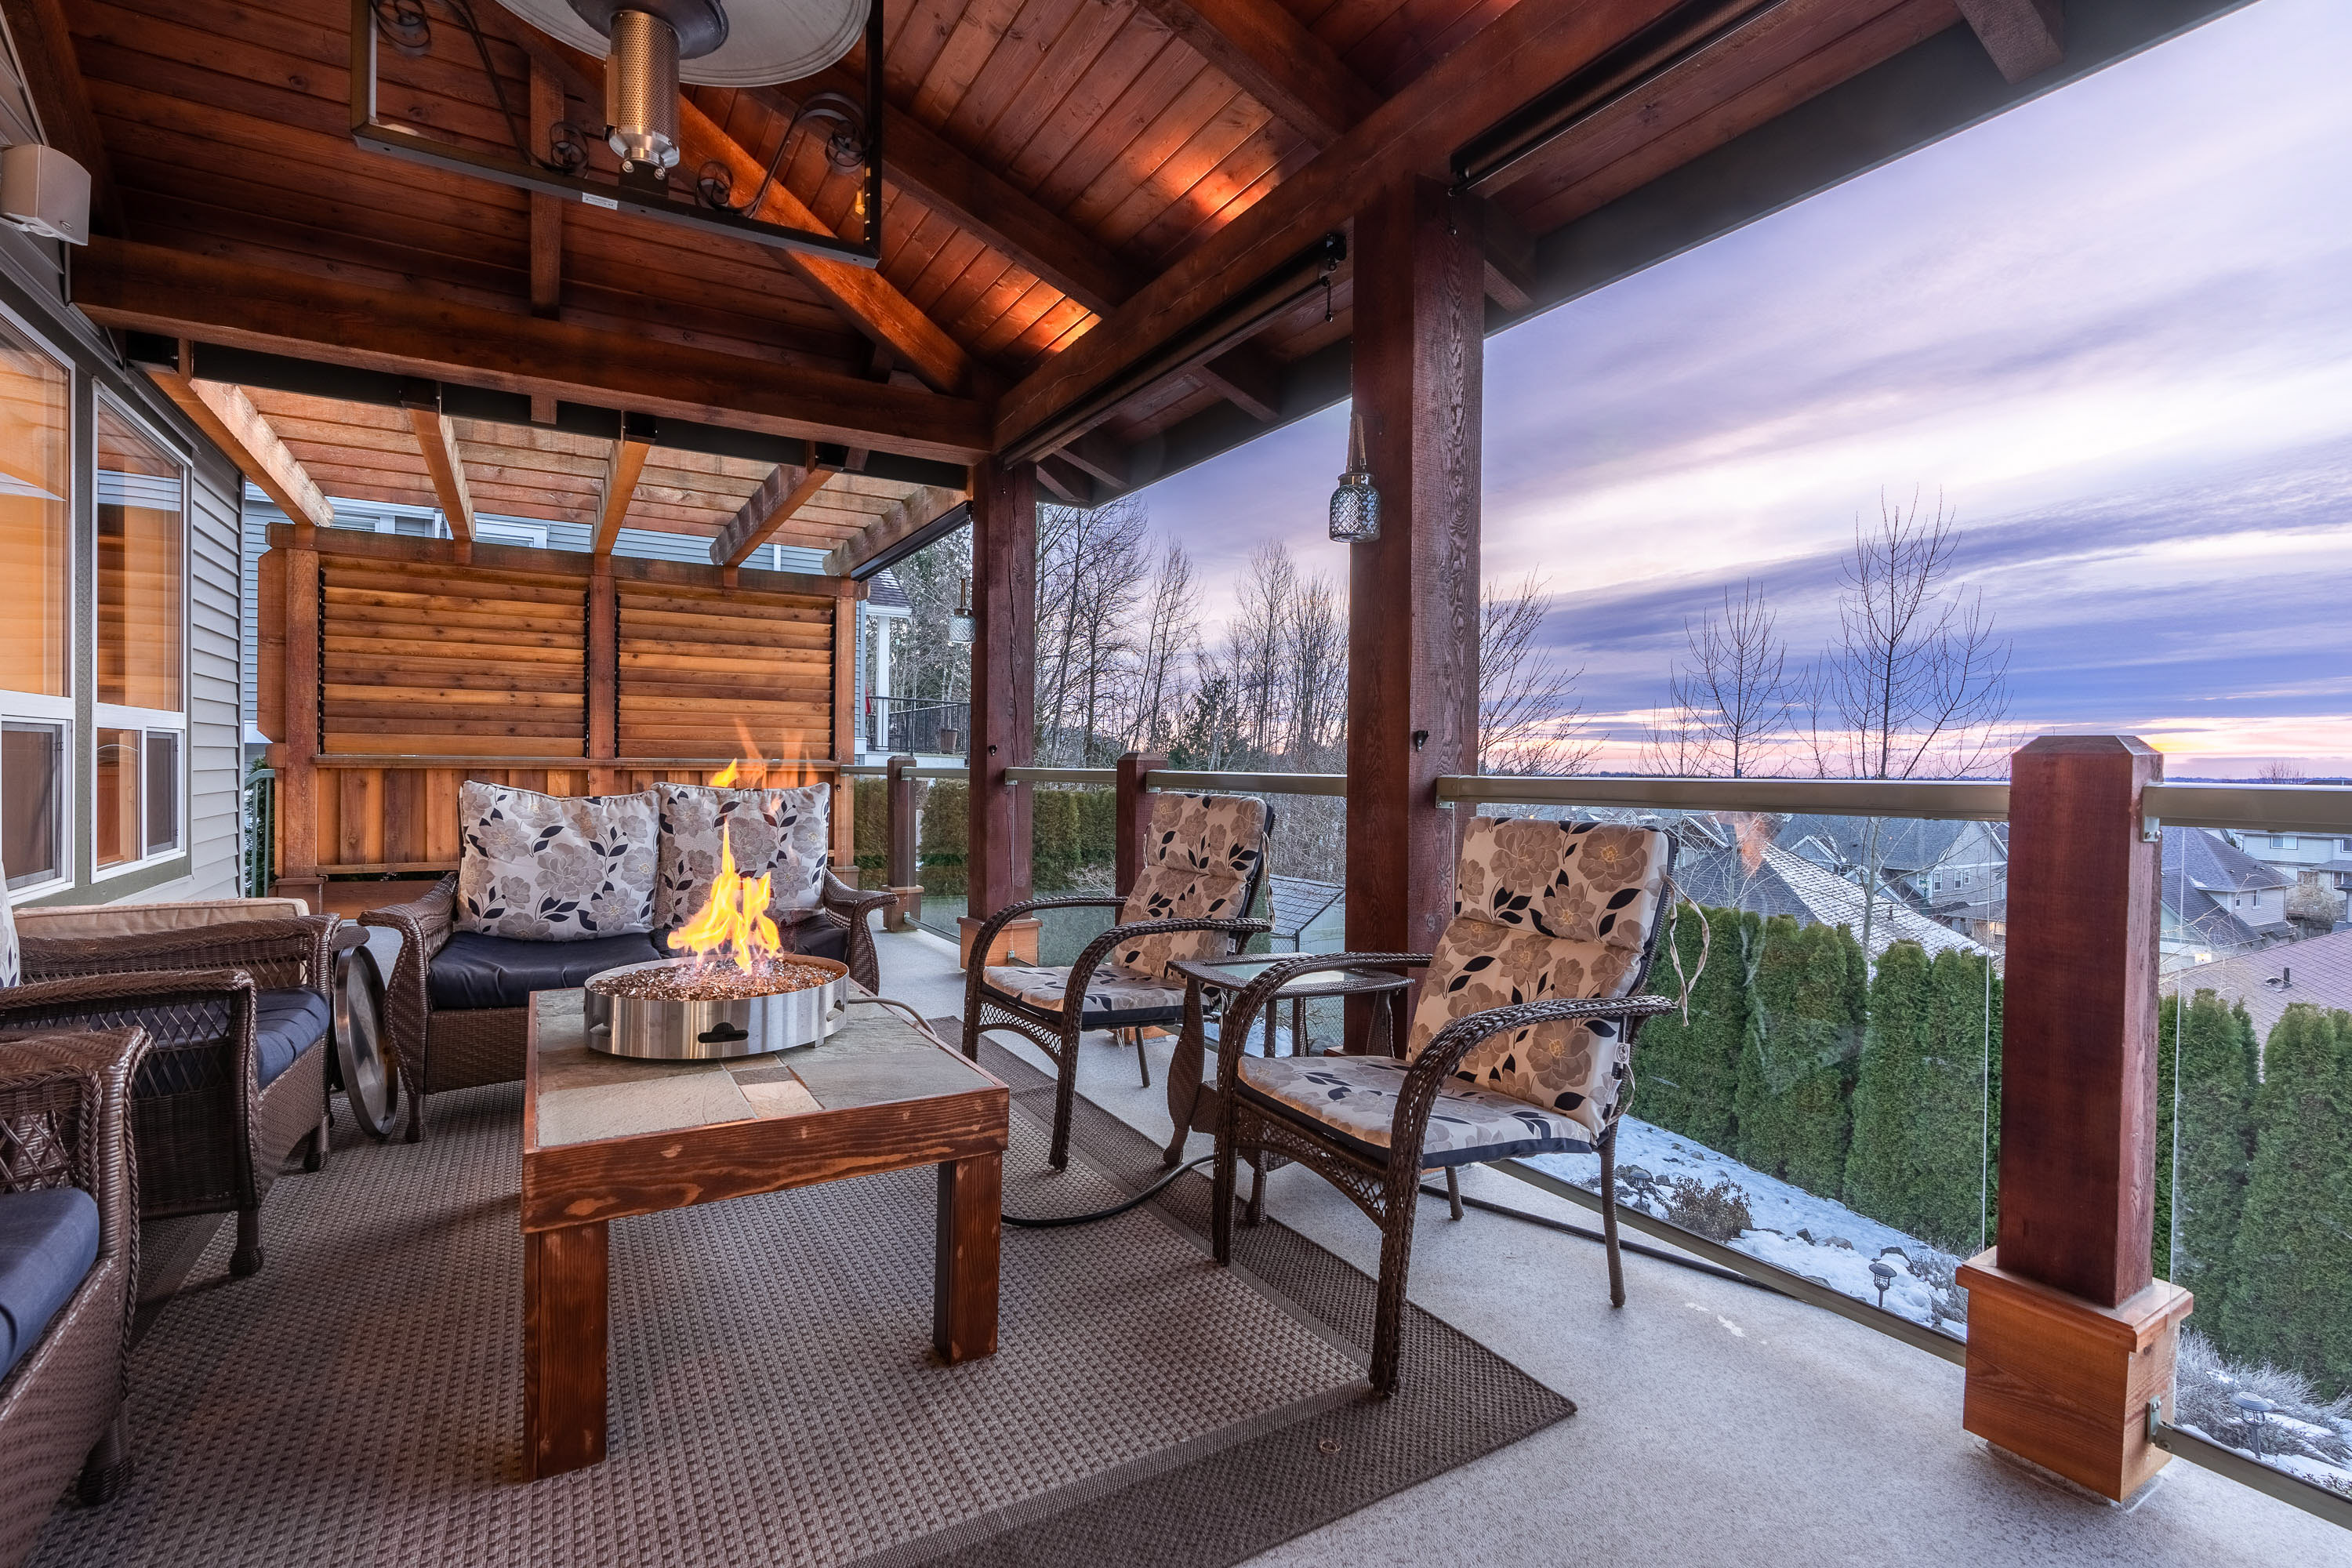 Whistler Meets Tuscany in This Luxury Home With Stunning Sunset Views!